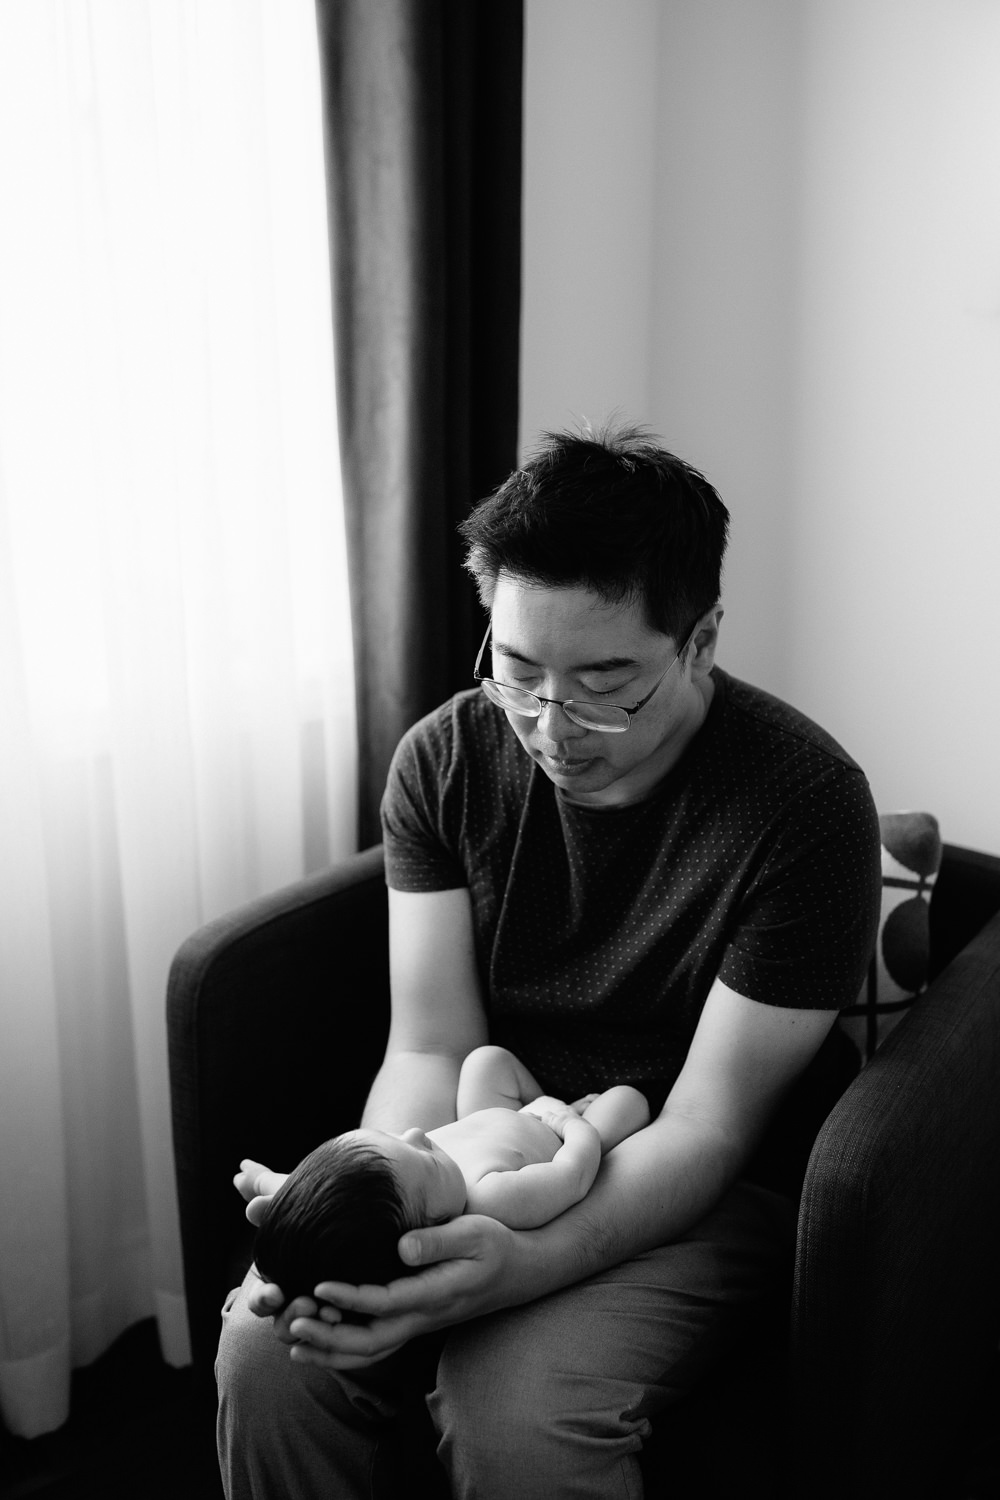 father sitting in armchair holding sleeping 2 week old baby boy in diaper, son's head in dad's hands - Uxbridge Lifestyle Photography